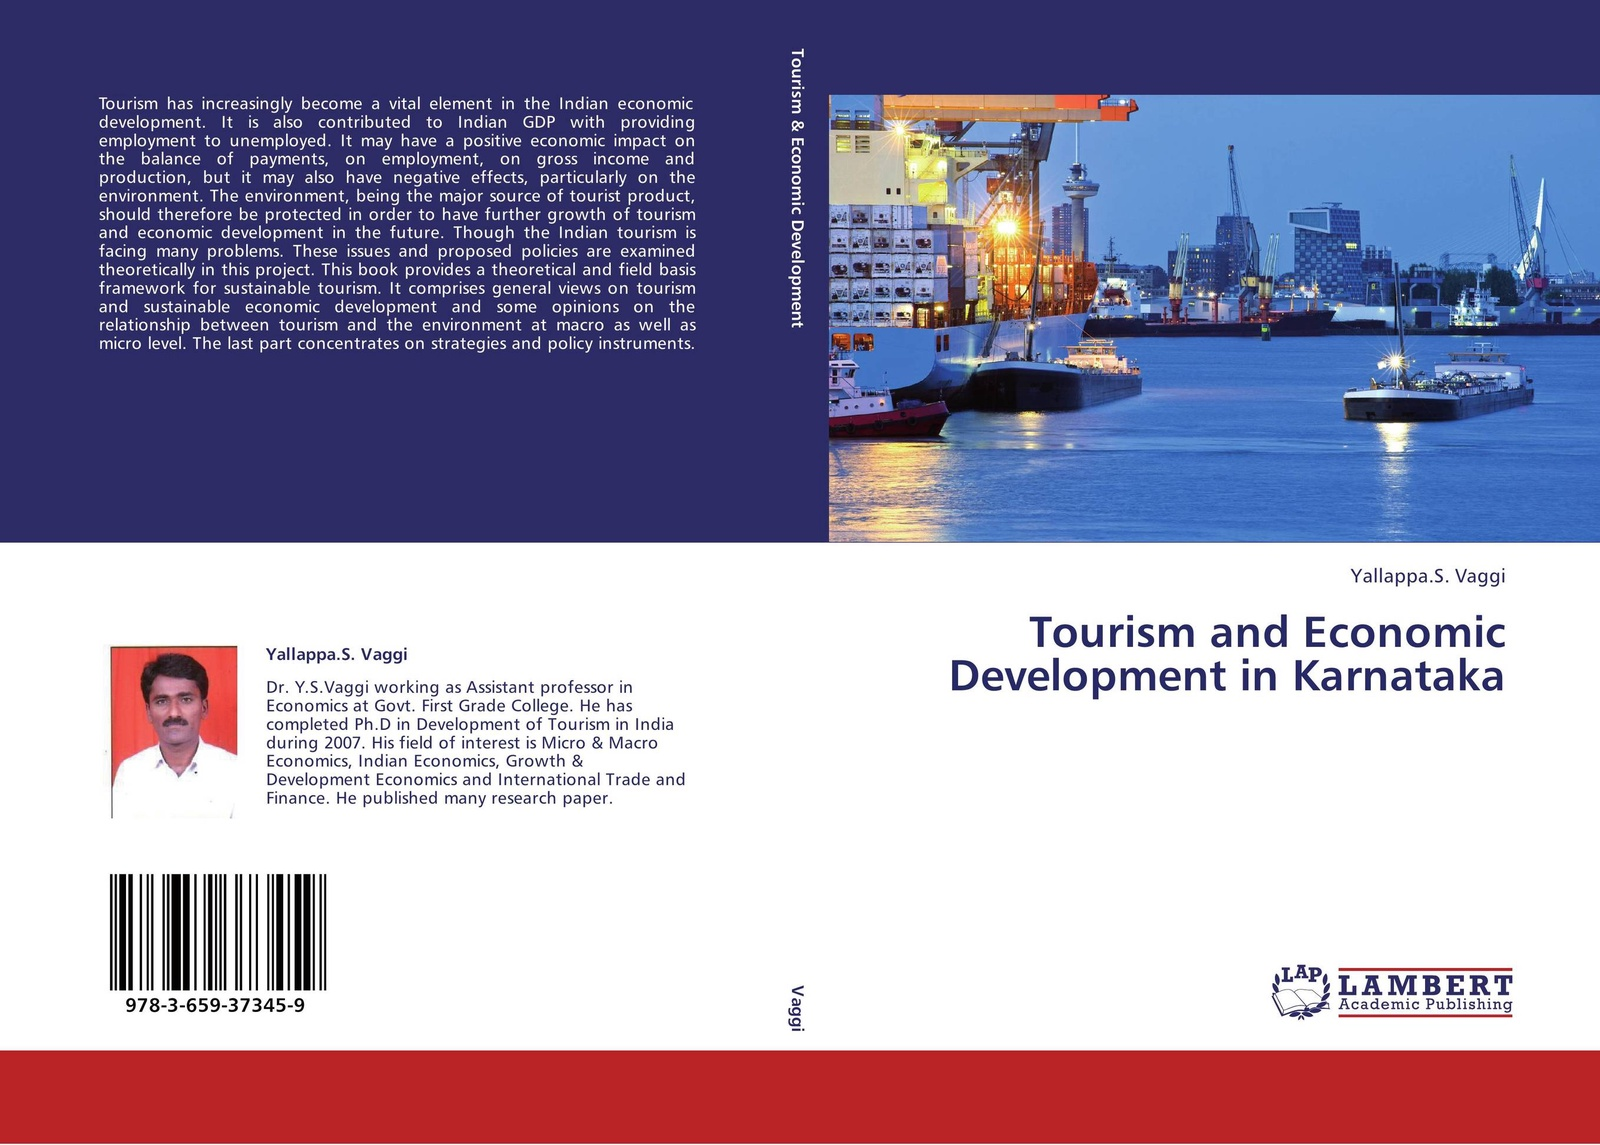 Yallappa.S. Vaggi Tourism and Economic Development in Karnataka